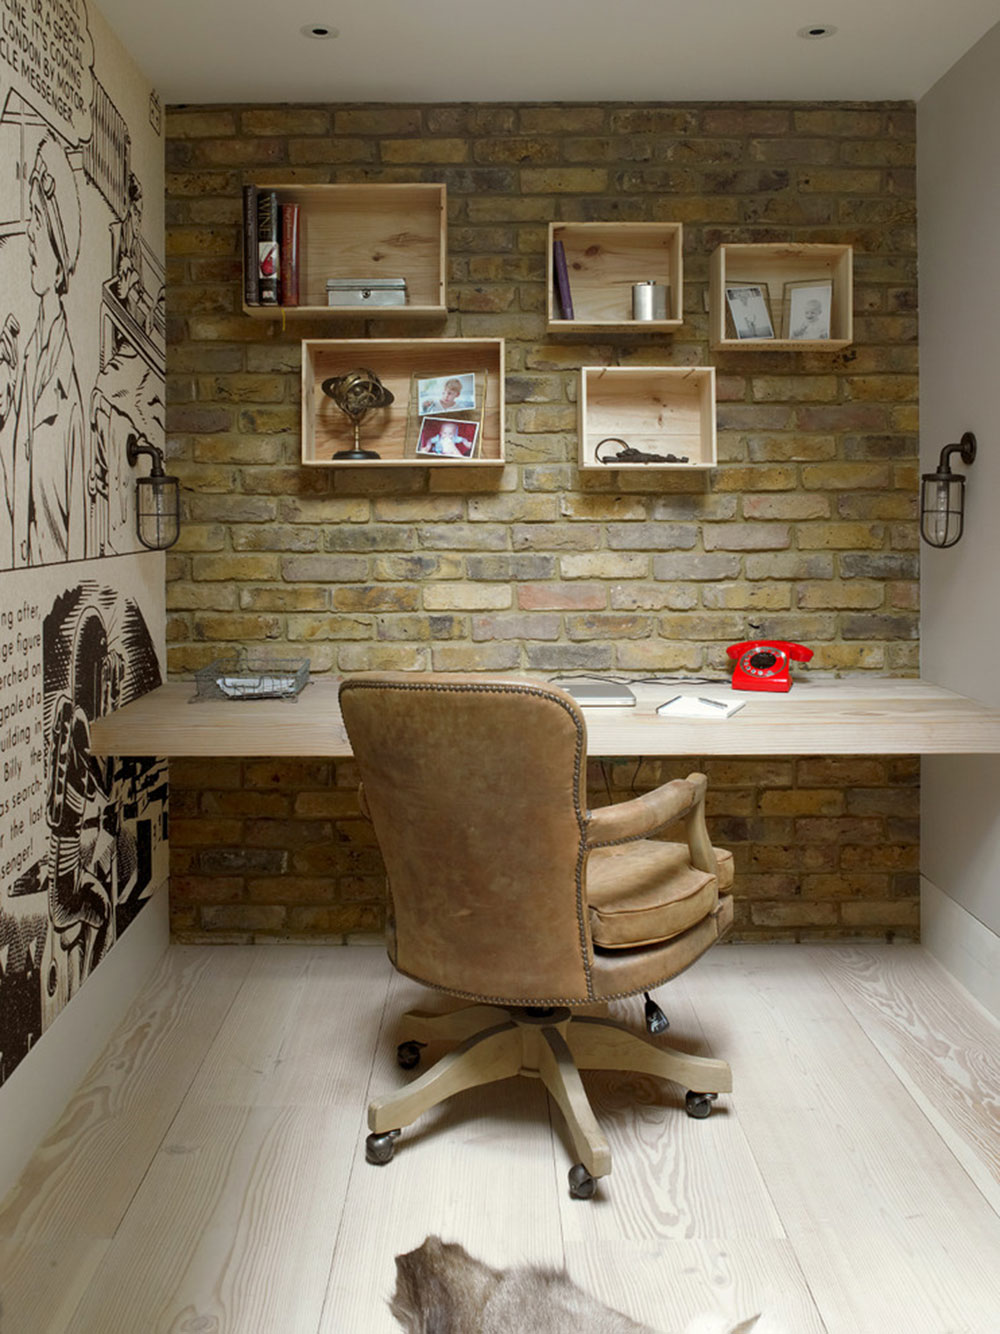 Design Desk Diy diy wall mounted desk design ideas for a pleasent job8 diy